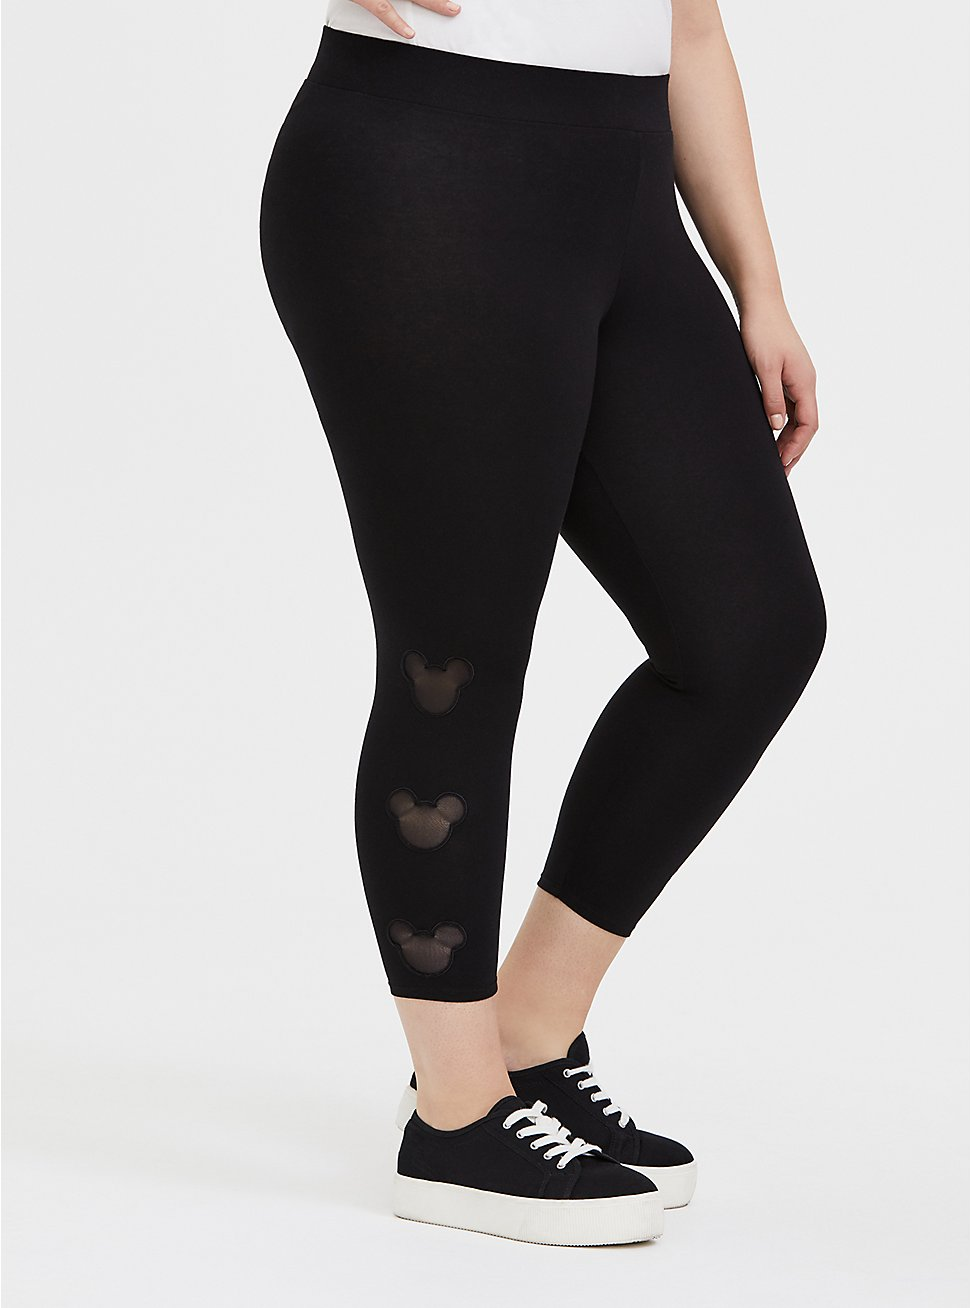 Disney Mickey Mouse /& Minnie Mouse Mirrored Leggings Plus Size